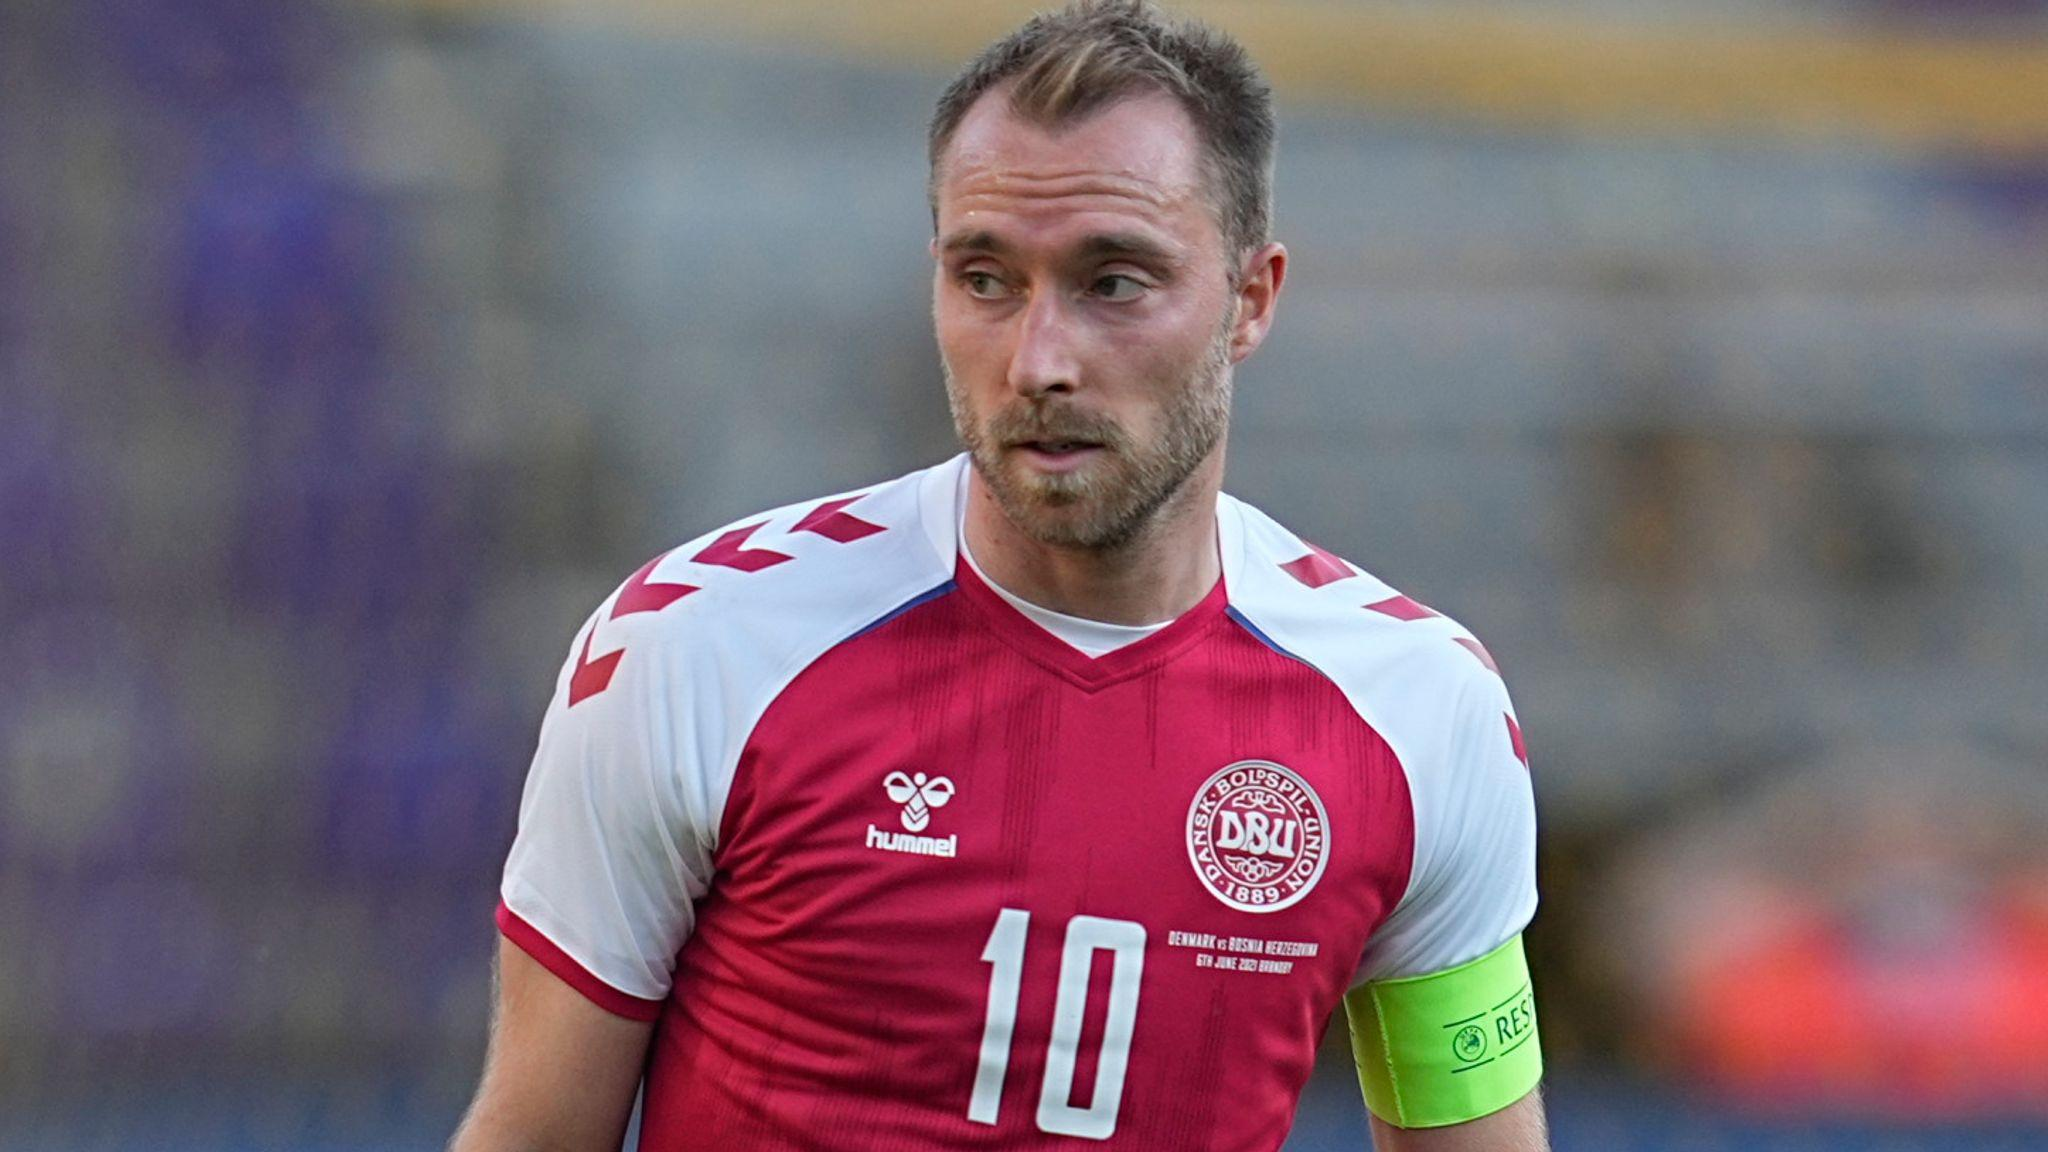 Christian Eriksen To Have Heart